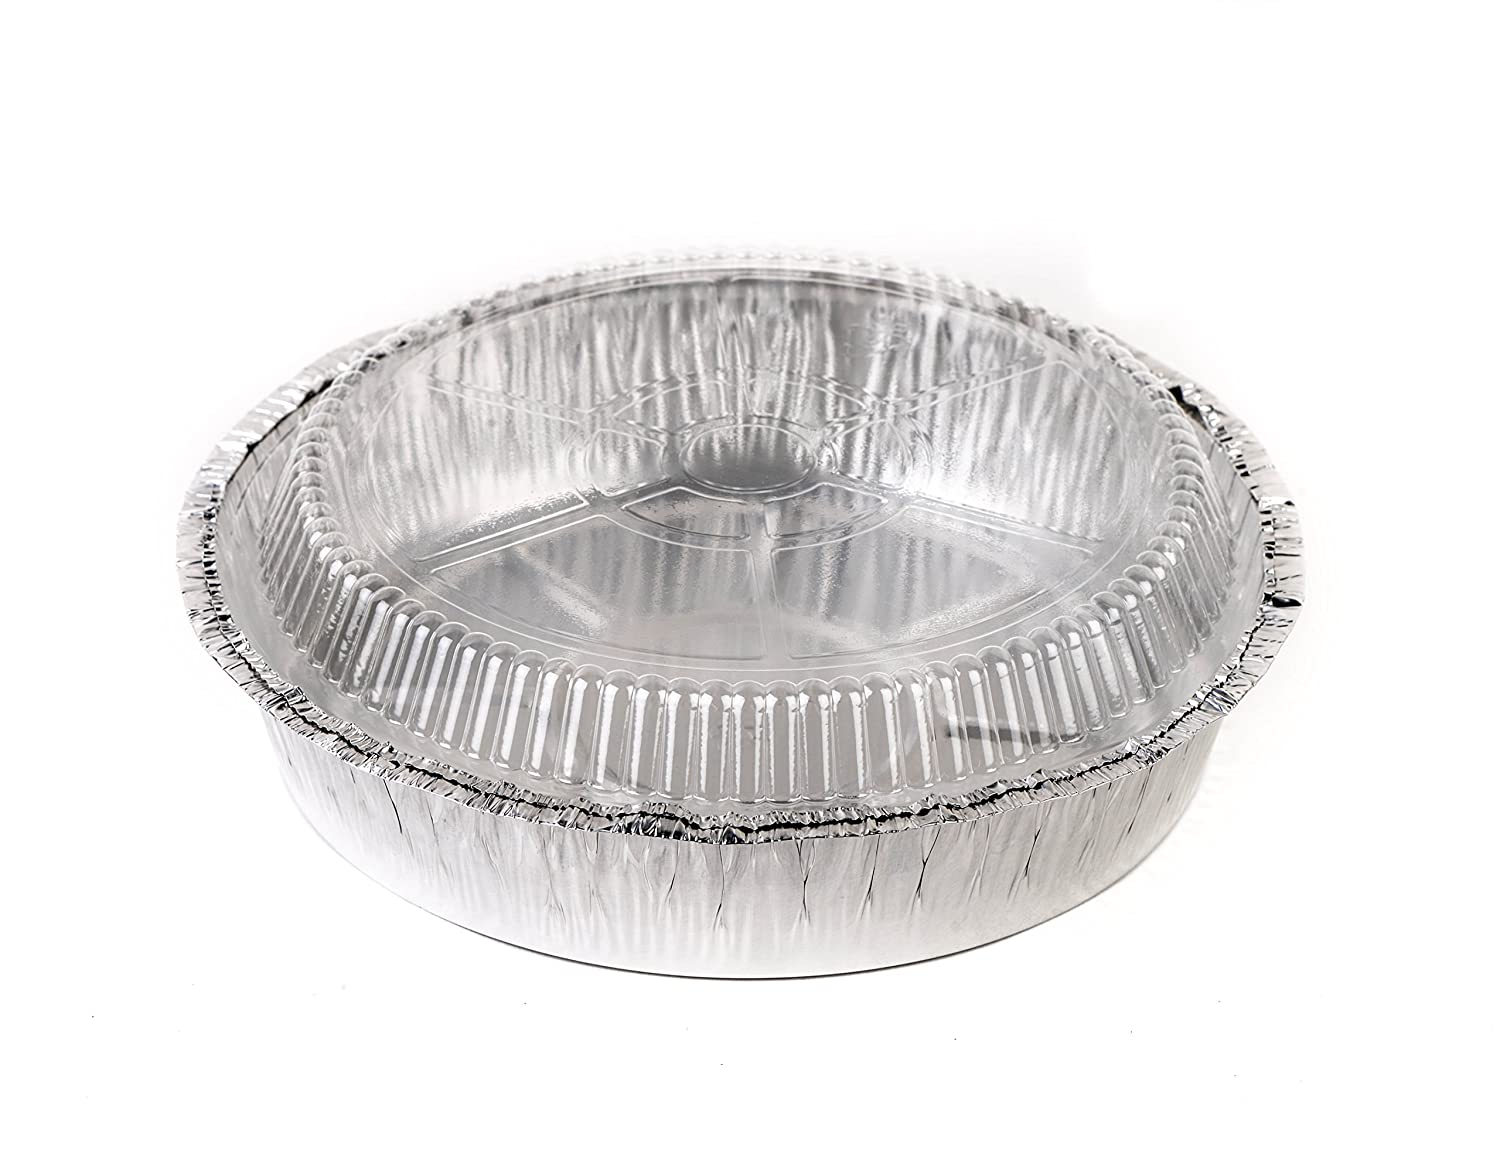 Cooking - 7 Inch Disposable Round Aluminum Foil Take-Out Pans with Plastic Lids Set Perfect for Baking Parties Restaurants by EcoQuality Catering 100 Pack Disposable Tin Containers